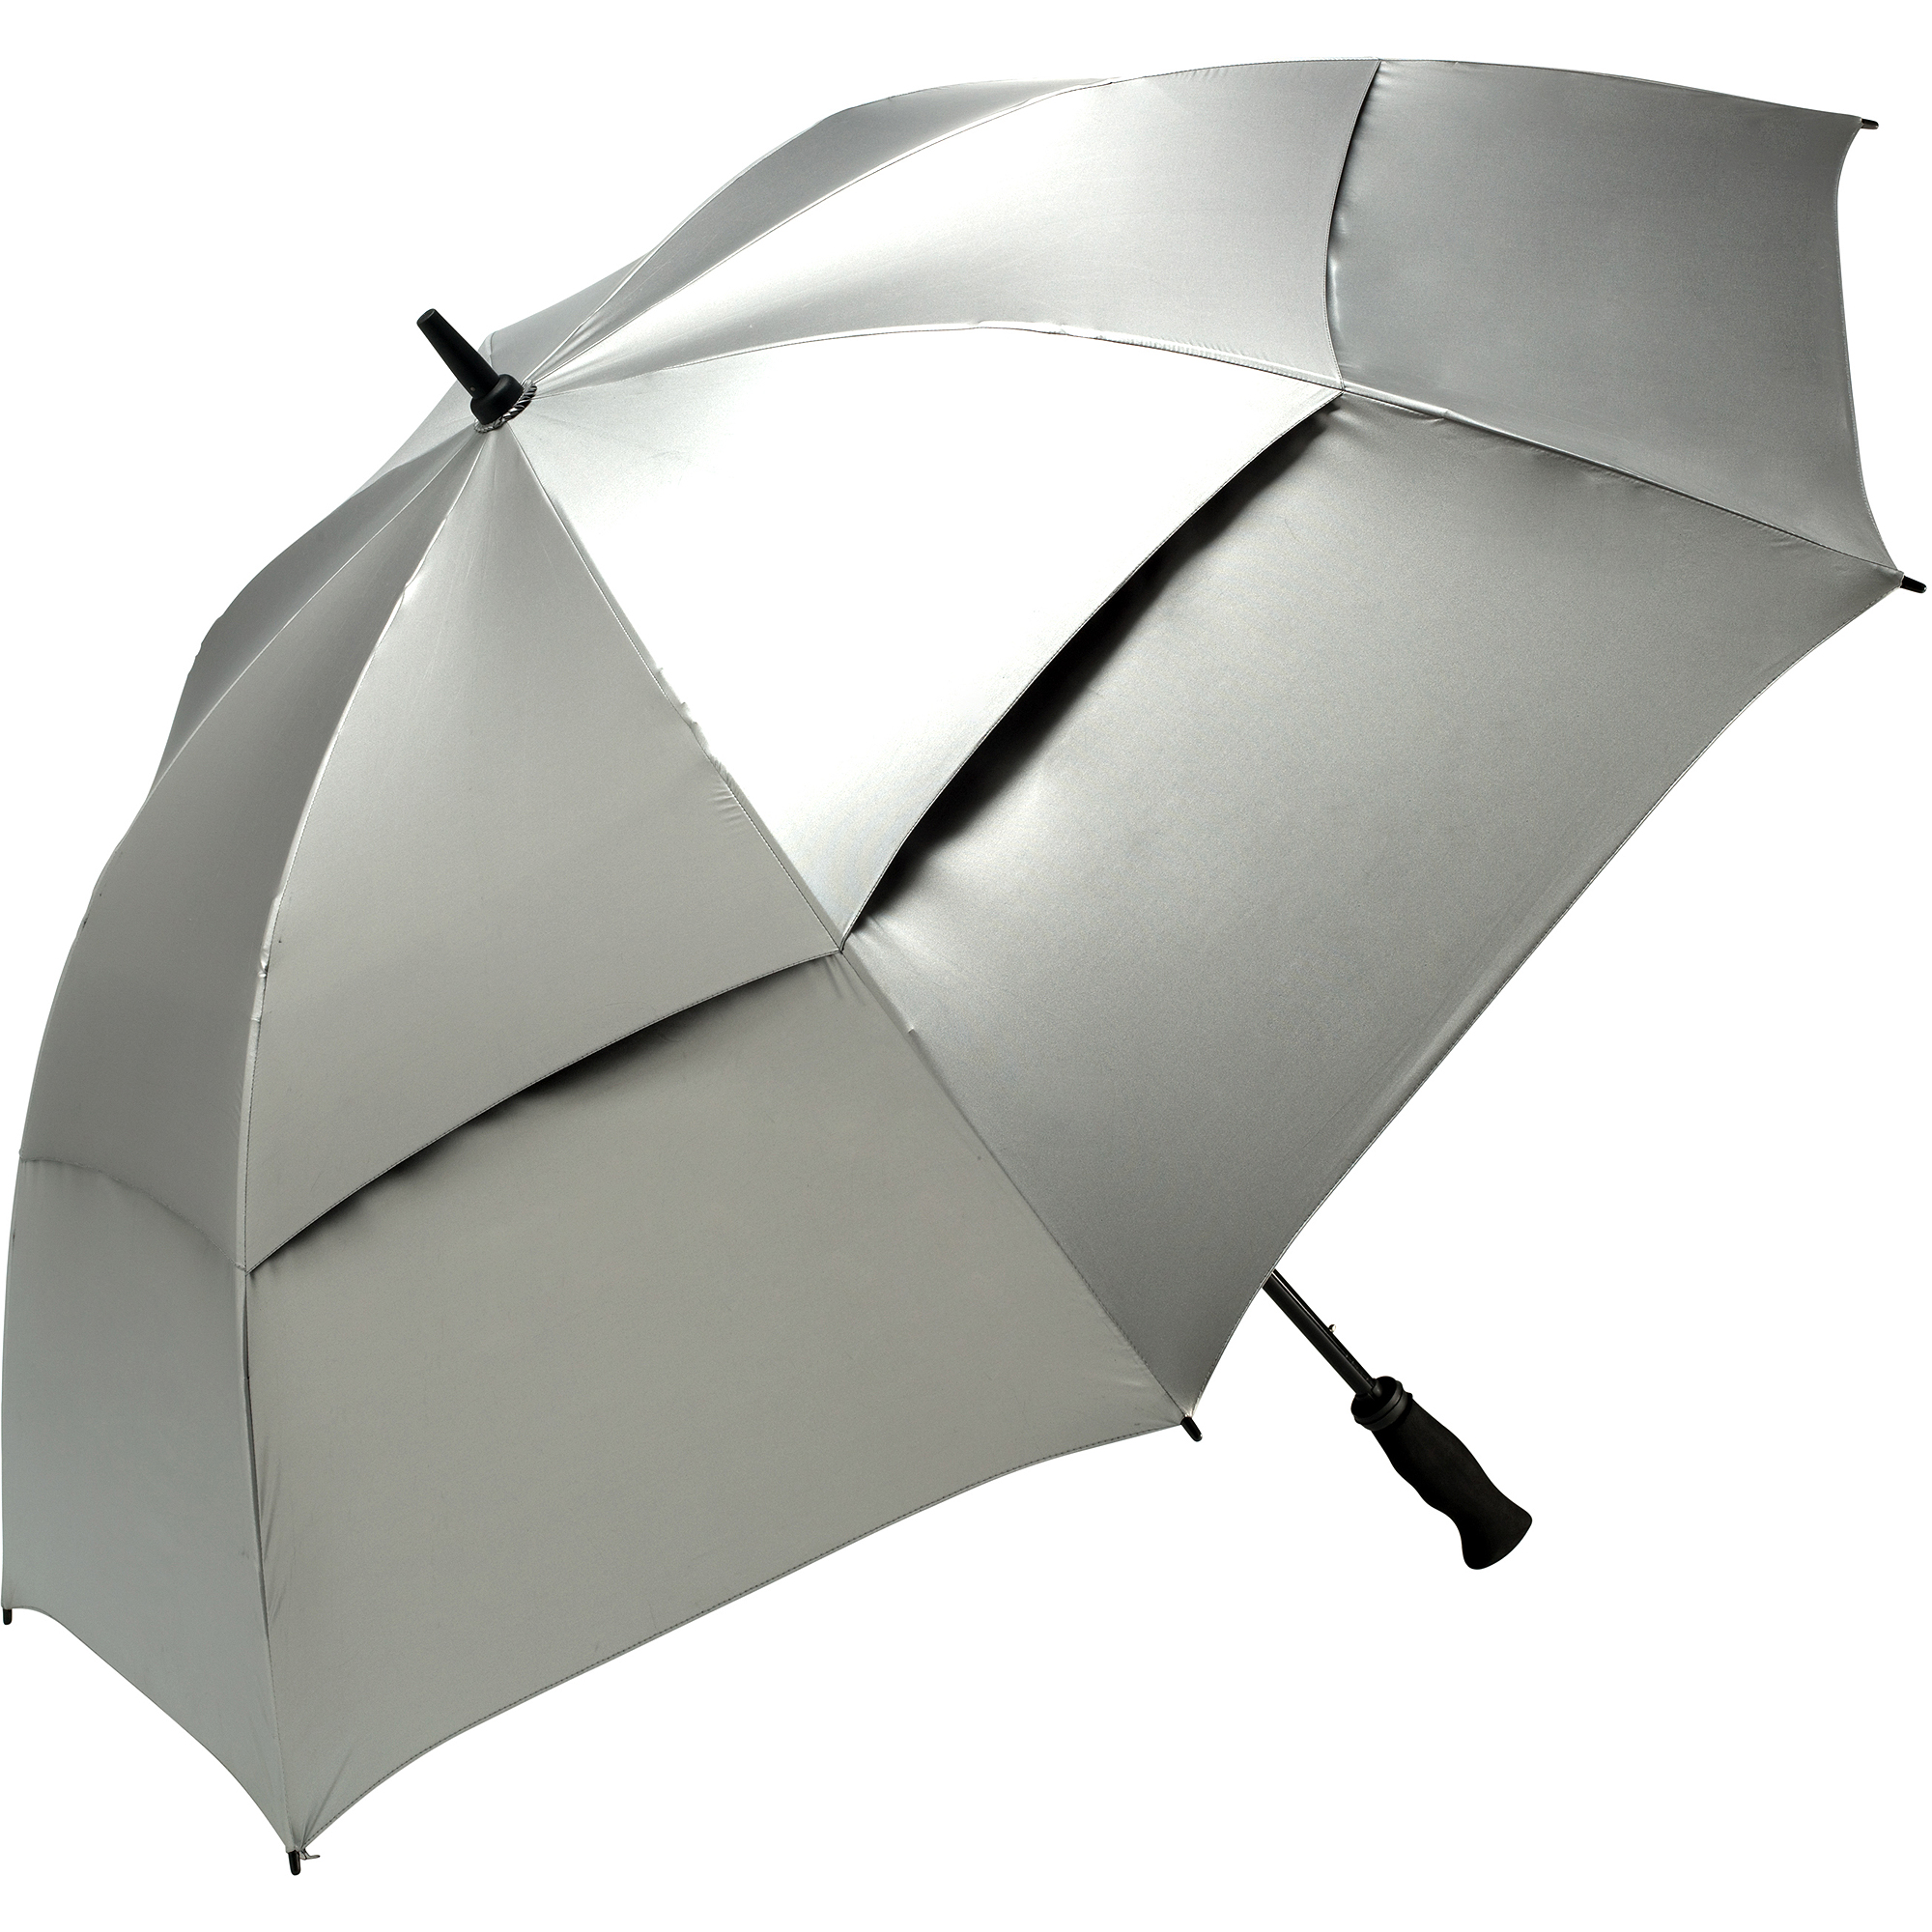 ShedRays UPF50 Vented Golf Umbrella, Silver